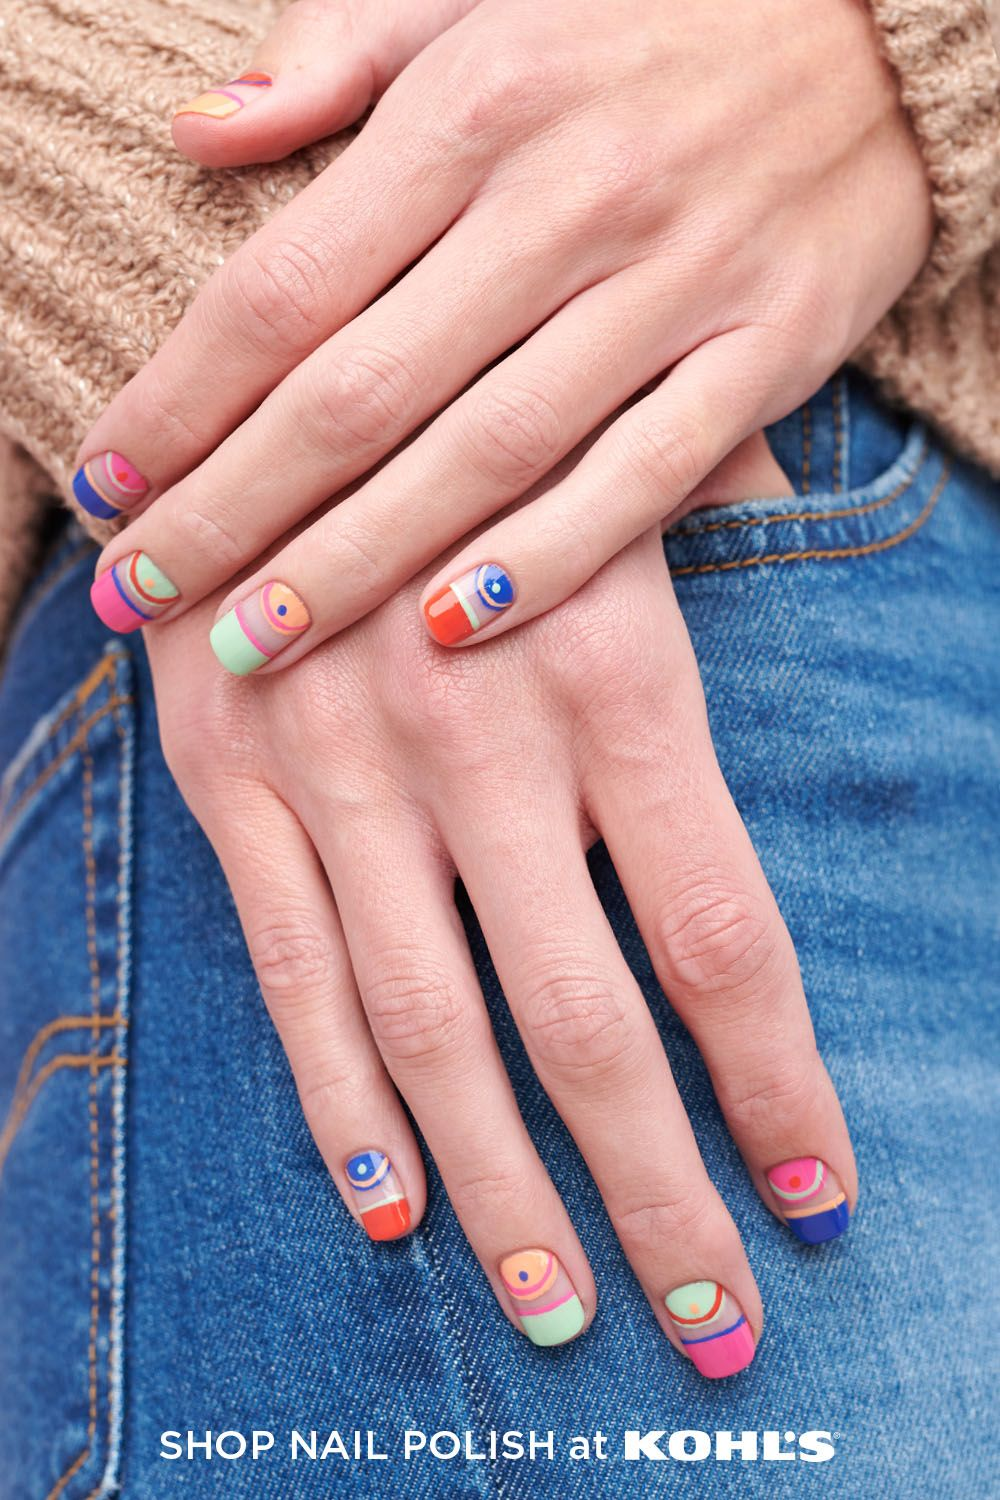 When it comes to spring nails, the brighter, the better. Go for the bold with standout shades from OPI. Ready to give the negative space manicure trend a try? Bring it to life with a playful mix of bright blues, reds, greens, oranges and pinks. Shop OPI nail polish and more at Kohl's and Kohls.com. #nails #spring